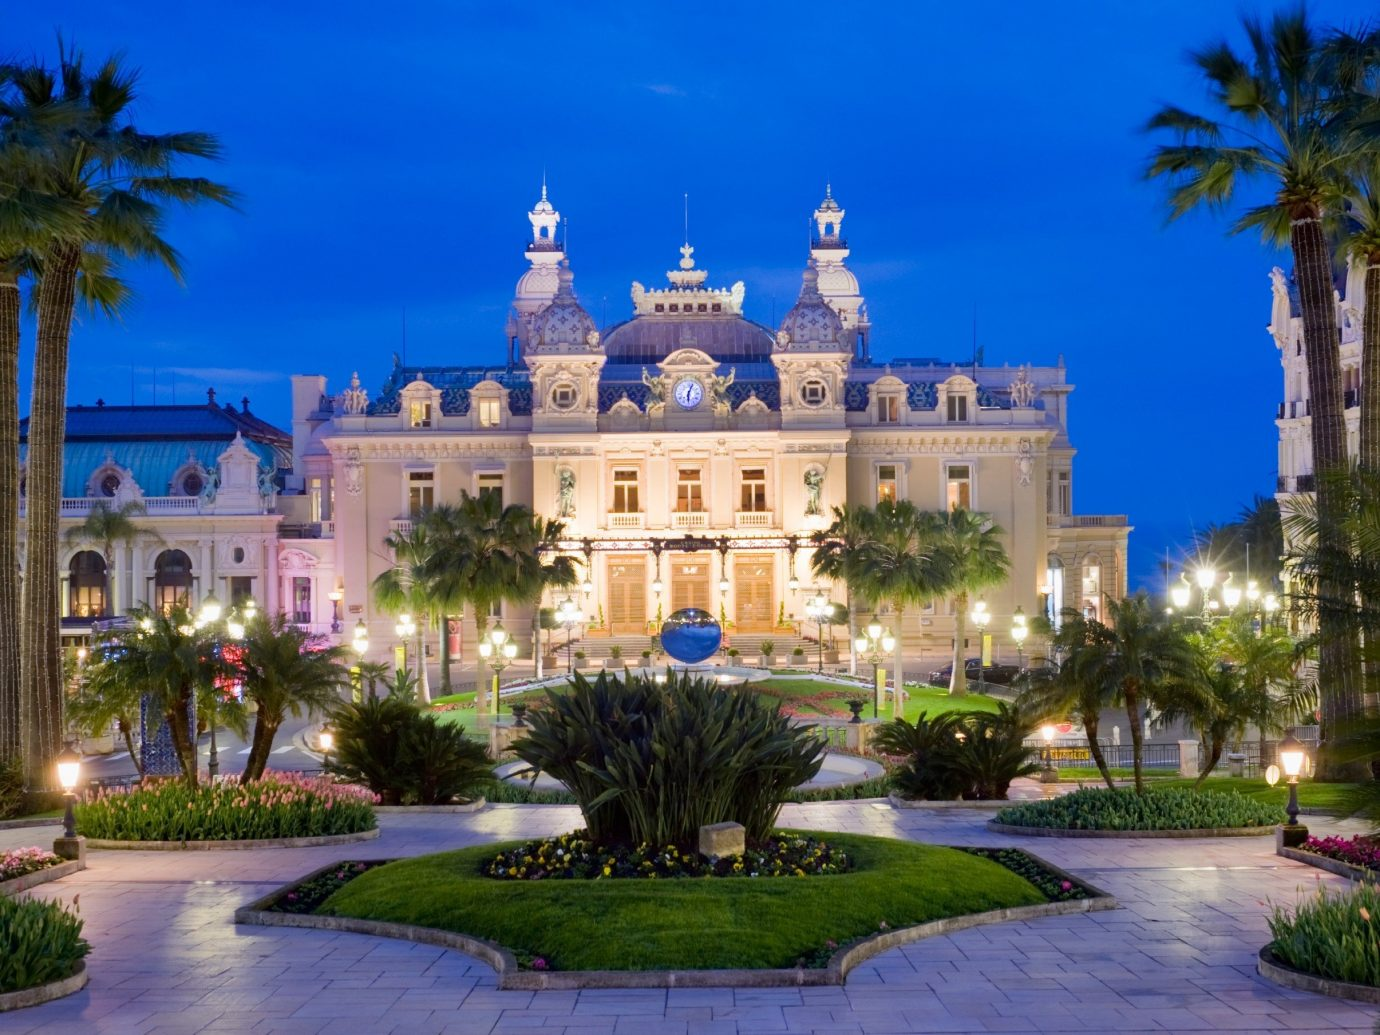 Hotels tree outdoor sky building plaza landmark estate Resort palace mansion tourism light park town square government building Garden surrounded